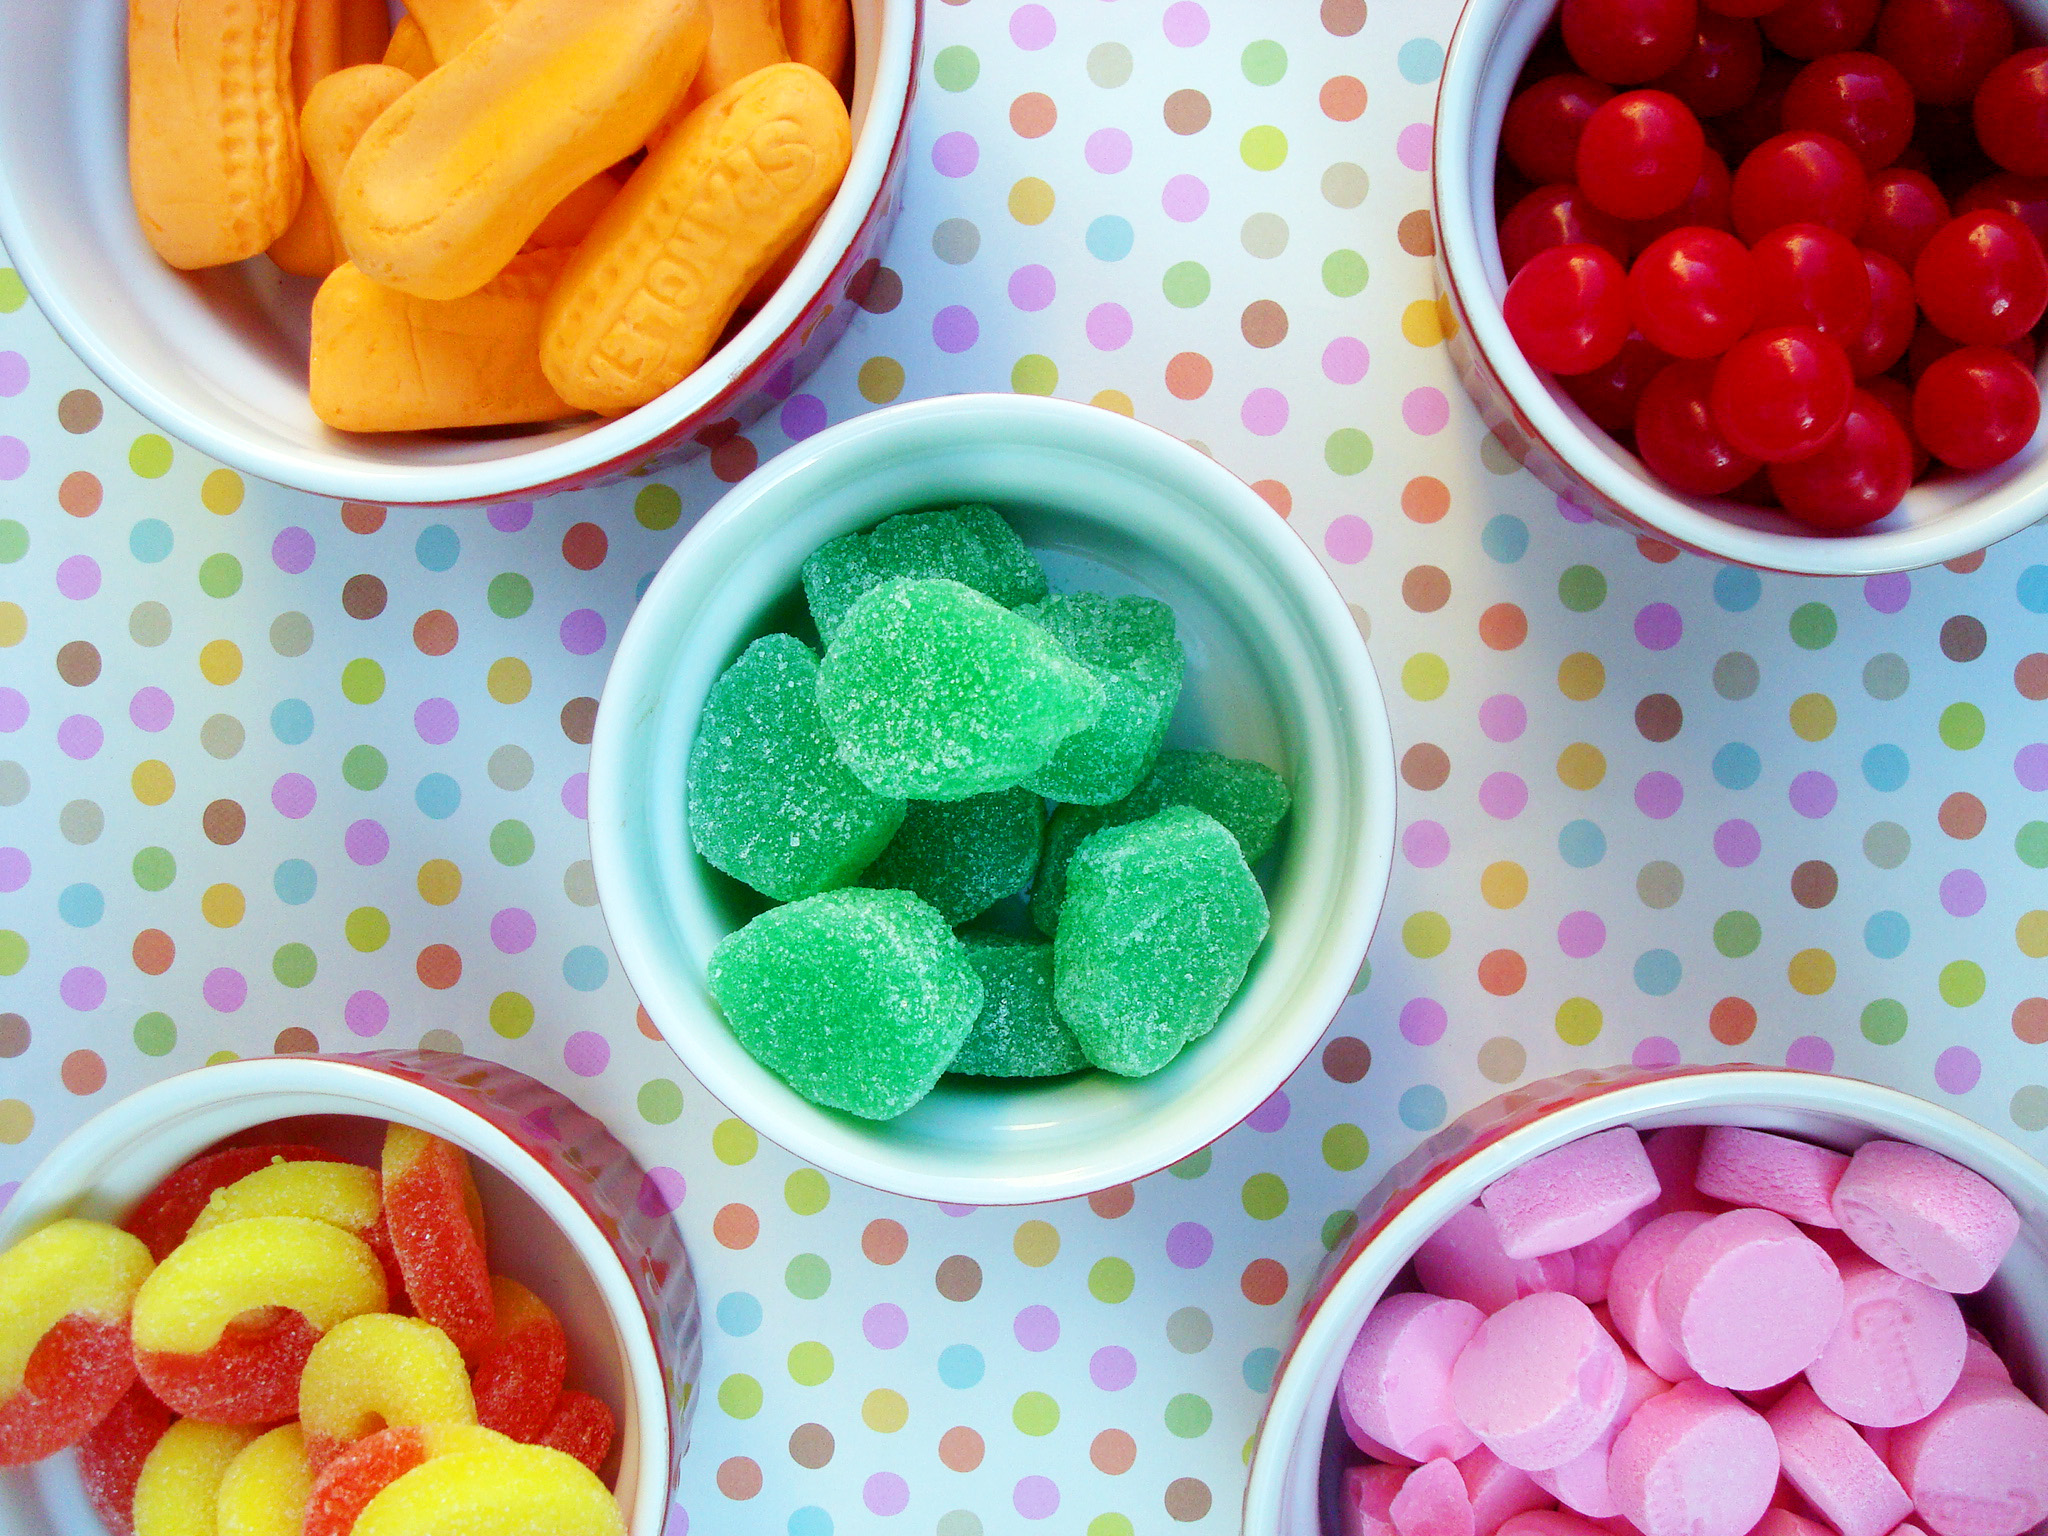 Different colors of candy